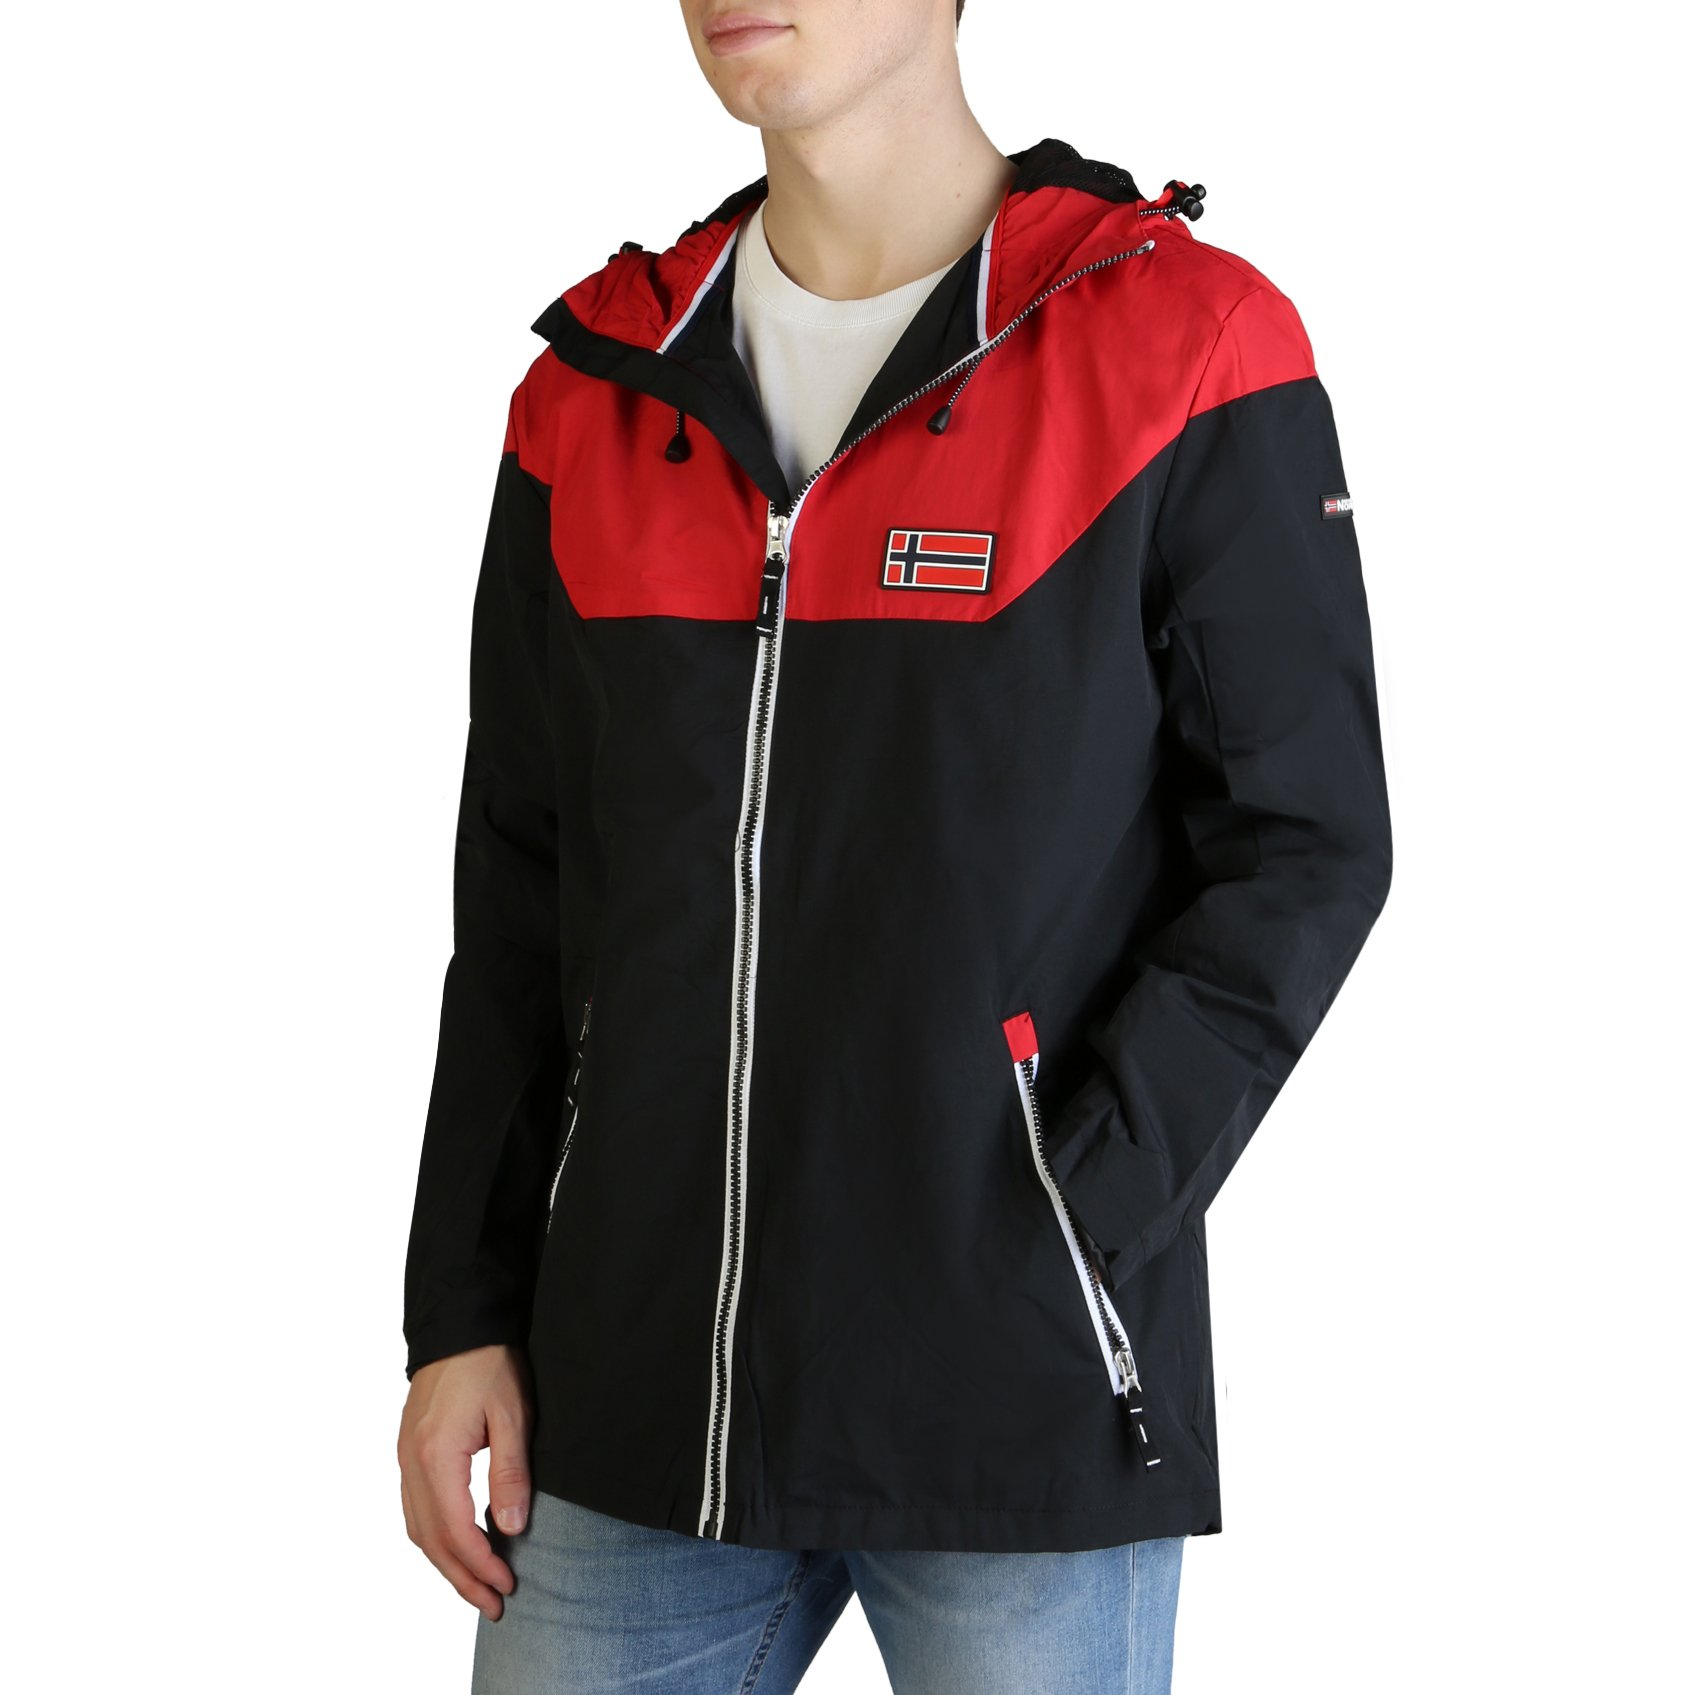 Geographical Norway Men's Afond_man Jacket Various Colours - red S